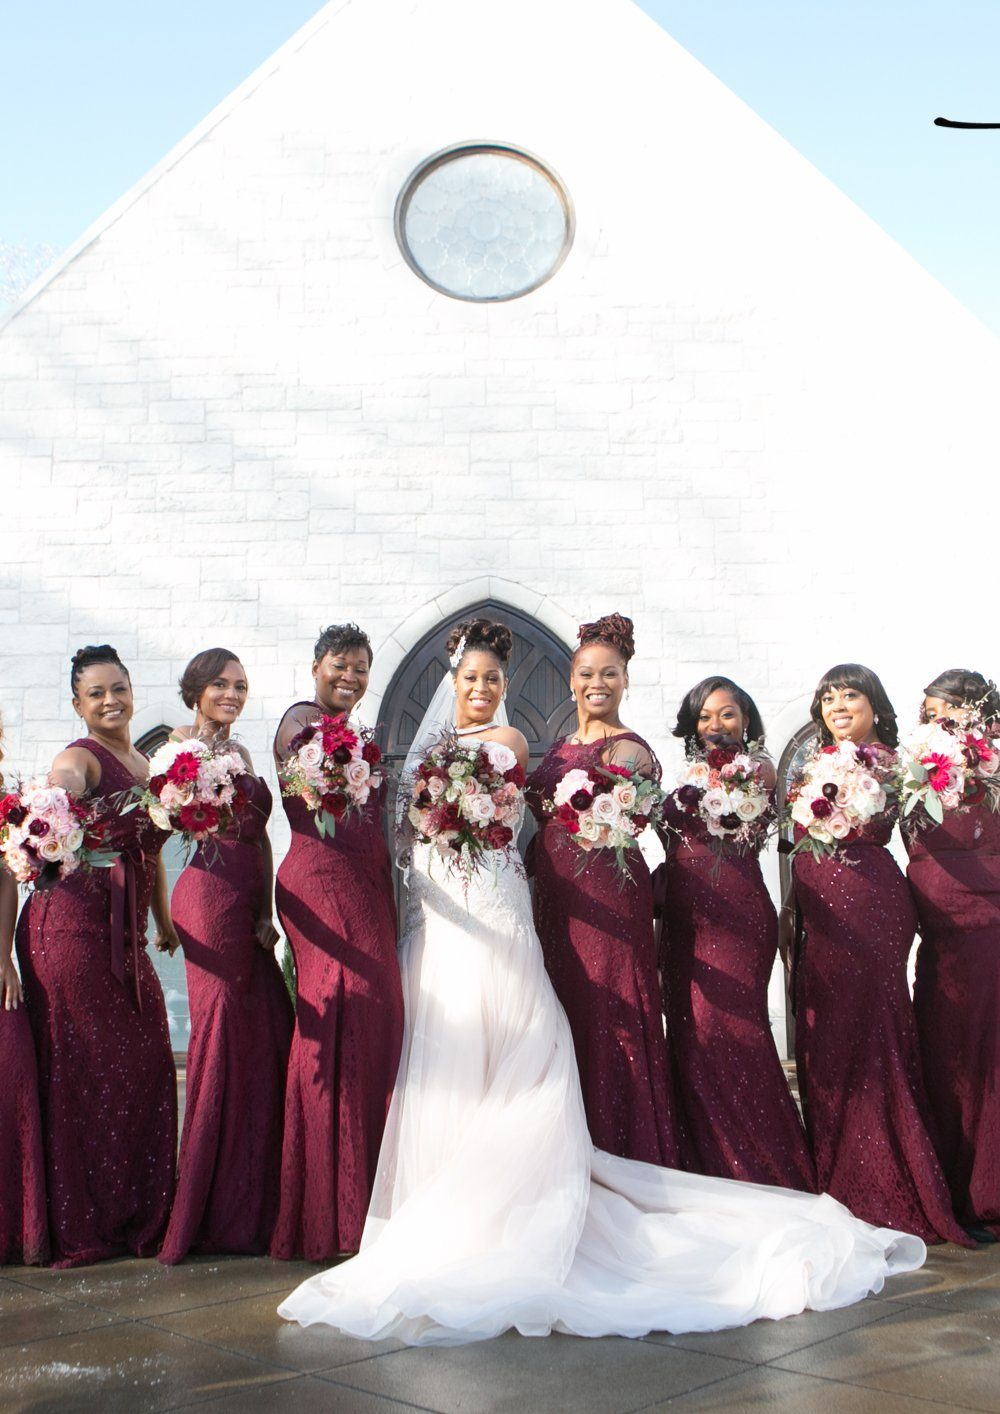 How to choose your wedding venue | LeeHenry Events